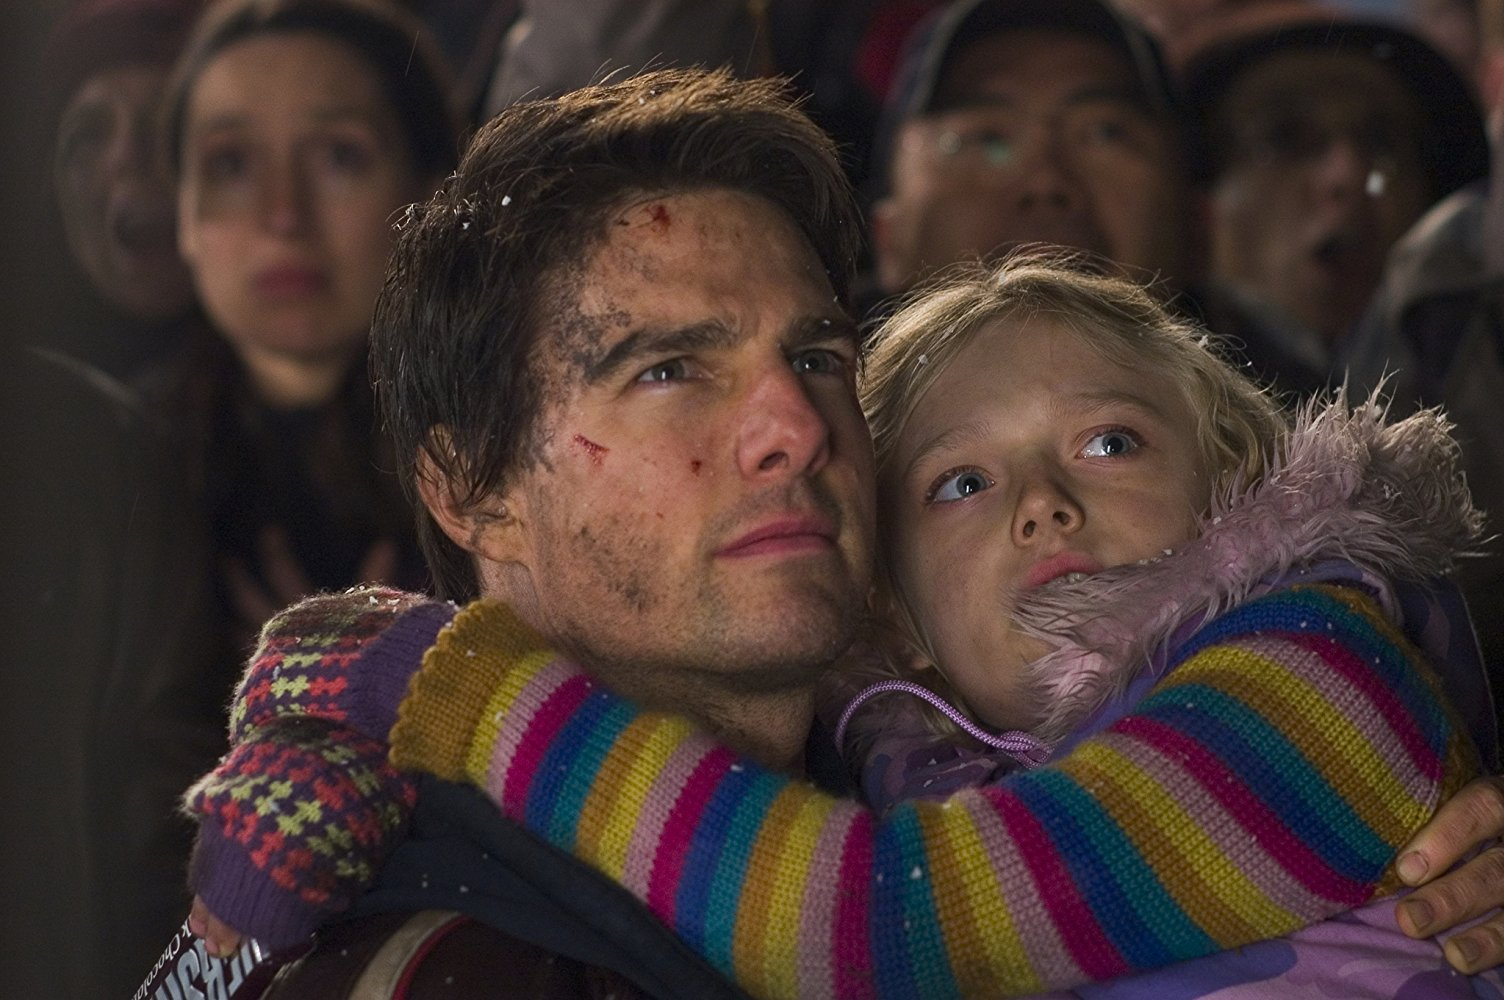 Tom Cruise and daughter Dakota Fanning in War of the Worlds (2005)